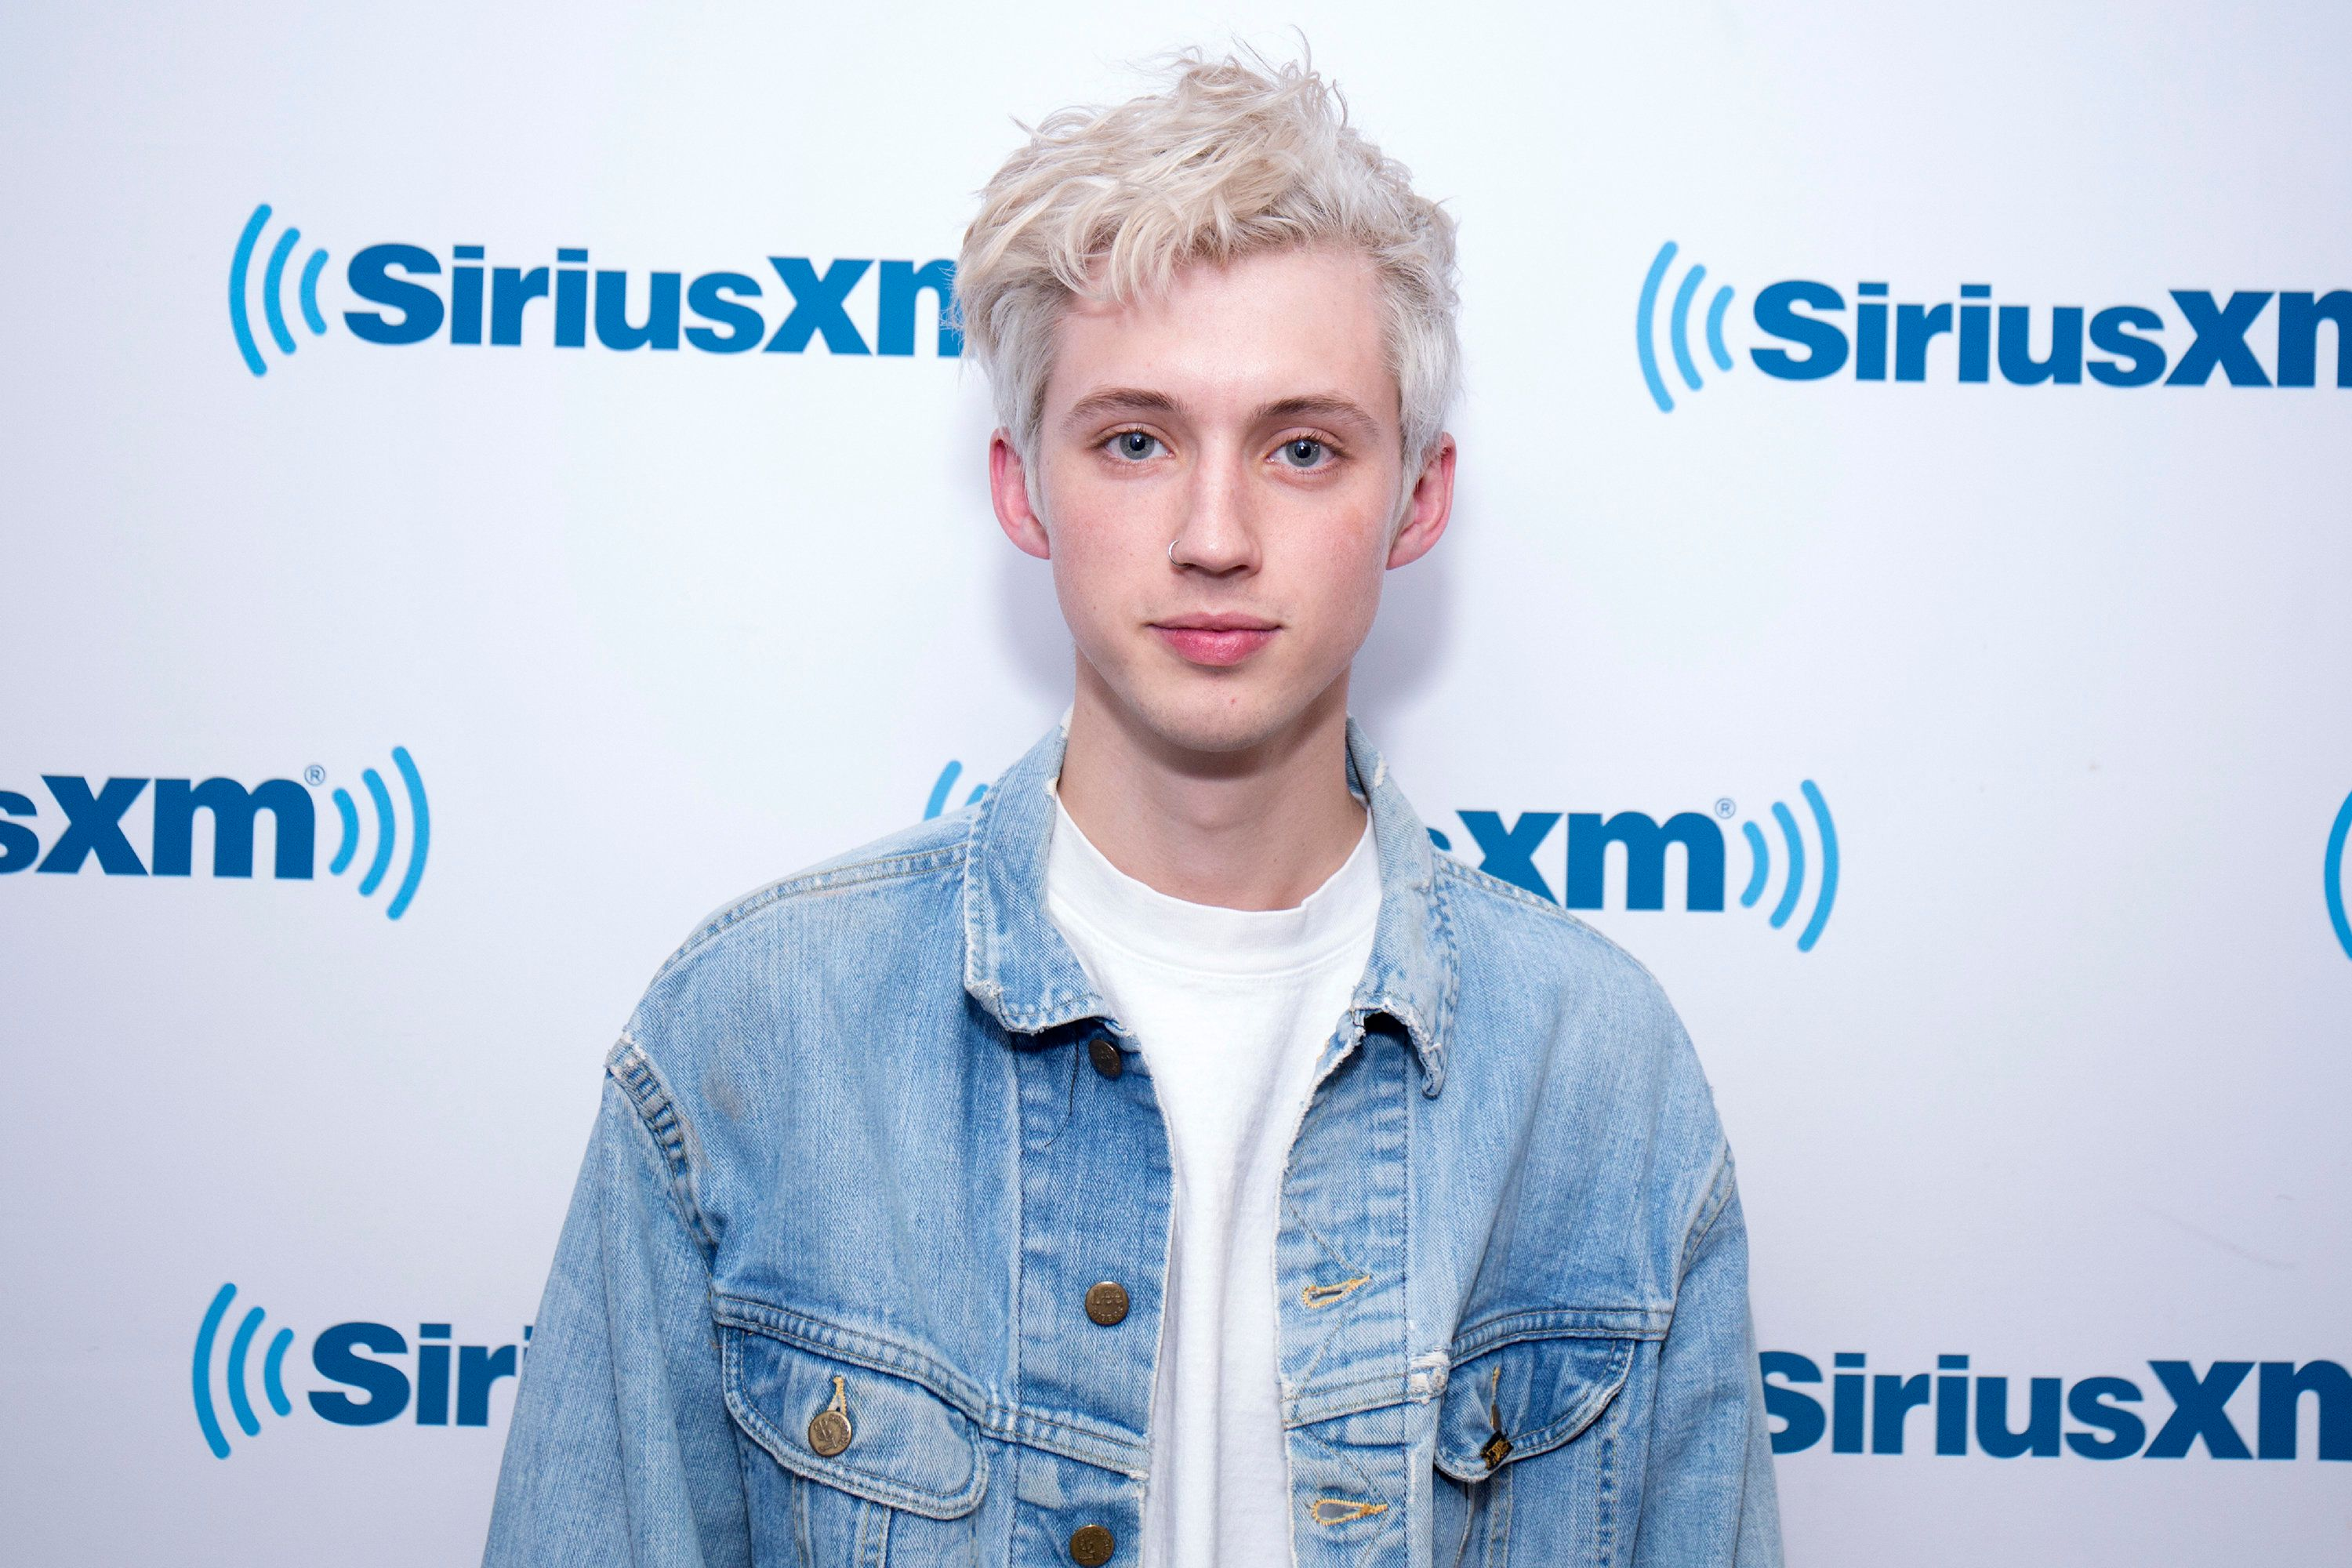 NEW YORK, NY - FEBRUARY 12:  Troye Sivan visits SiriusXM Studios on February 12, 2018 in New York City.  (Photo by Santiago Felipe/Getty Images)